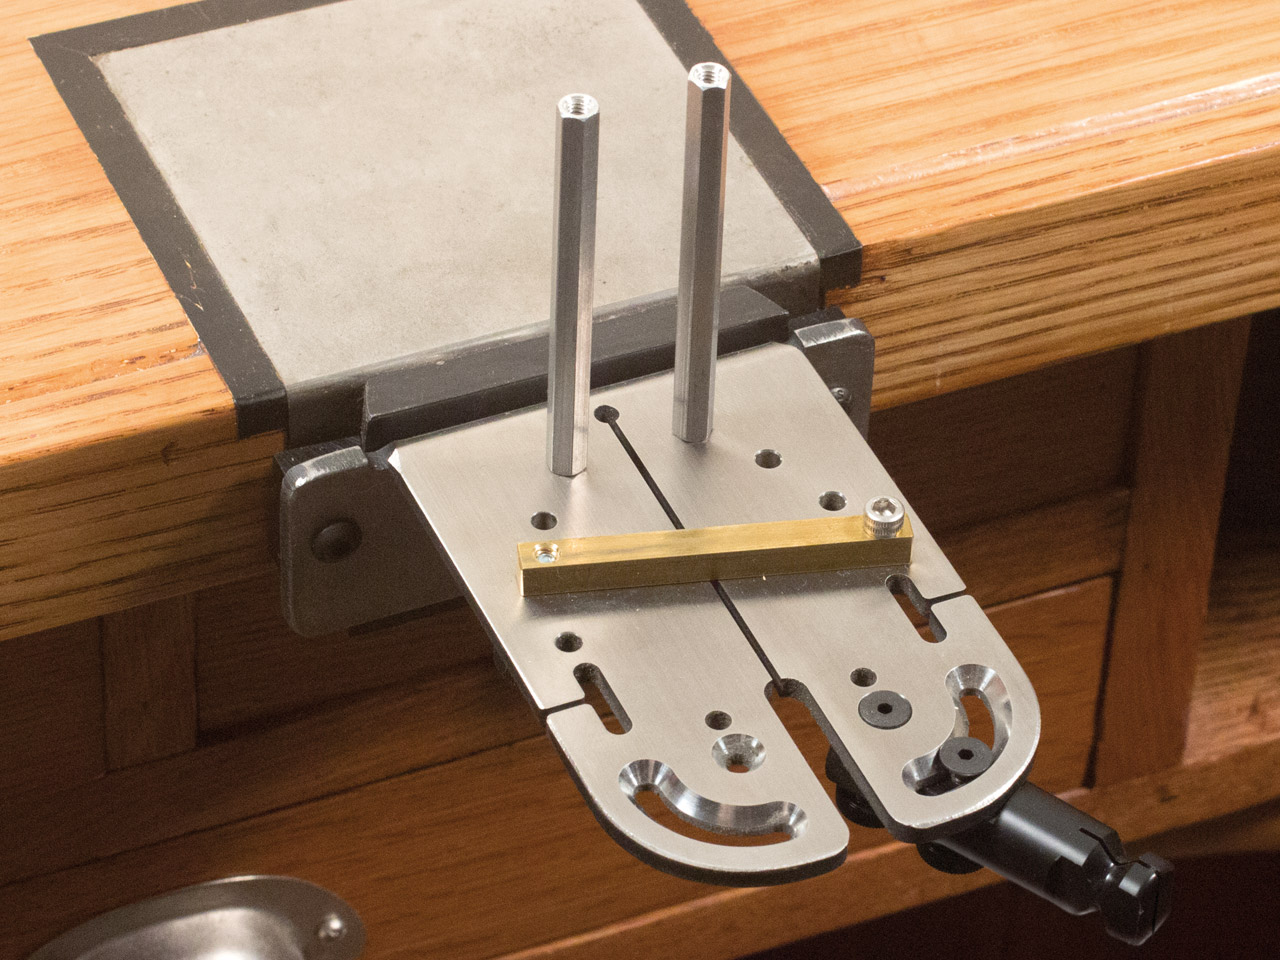 Include Dovetail Plates and More Knew Concepts Workbench Clamp Tools